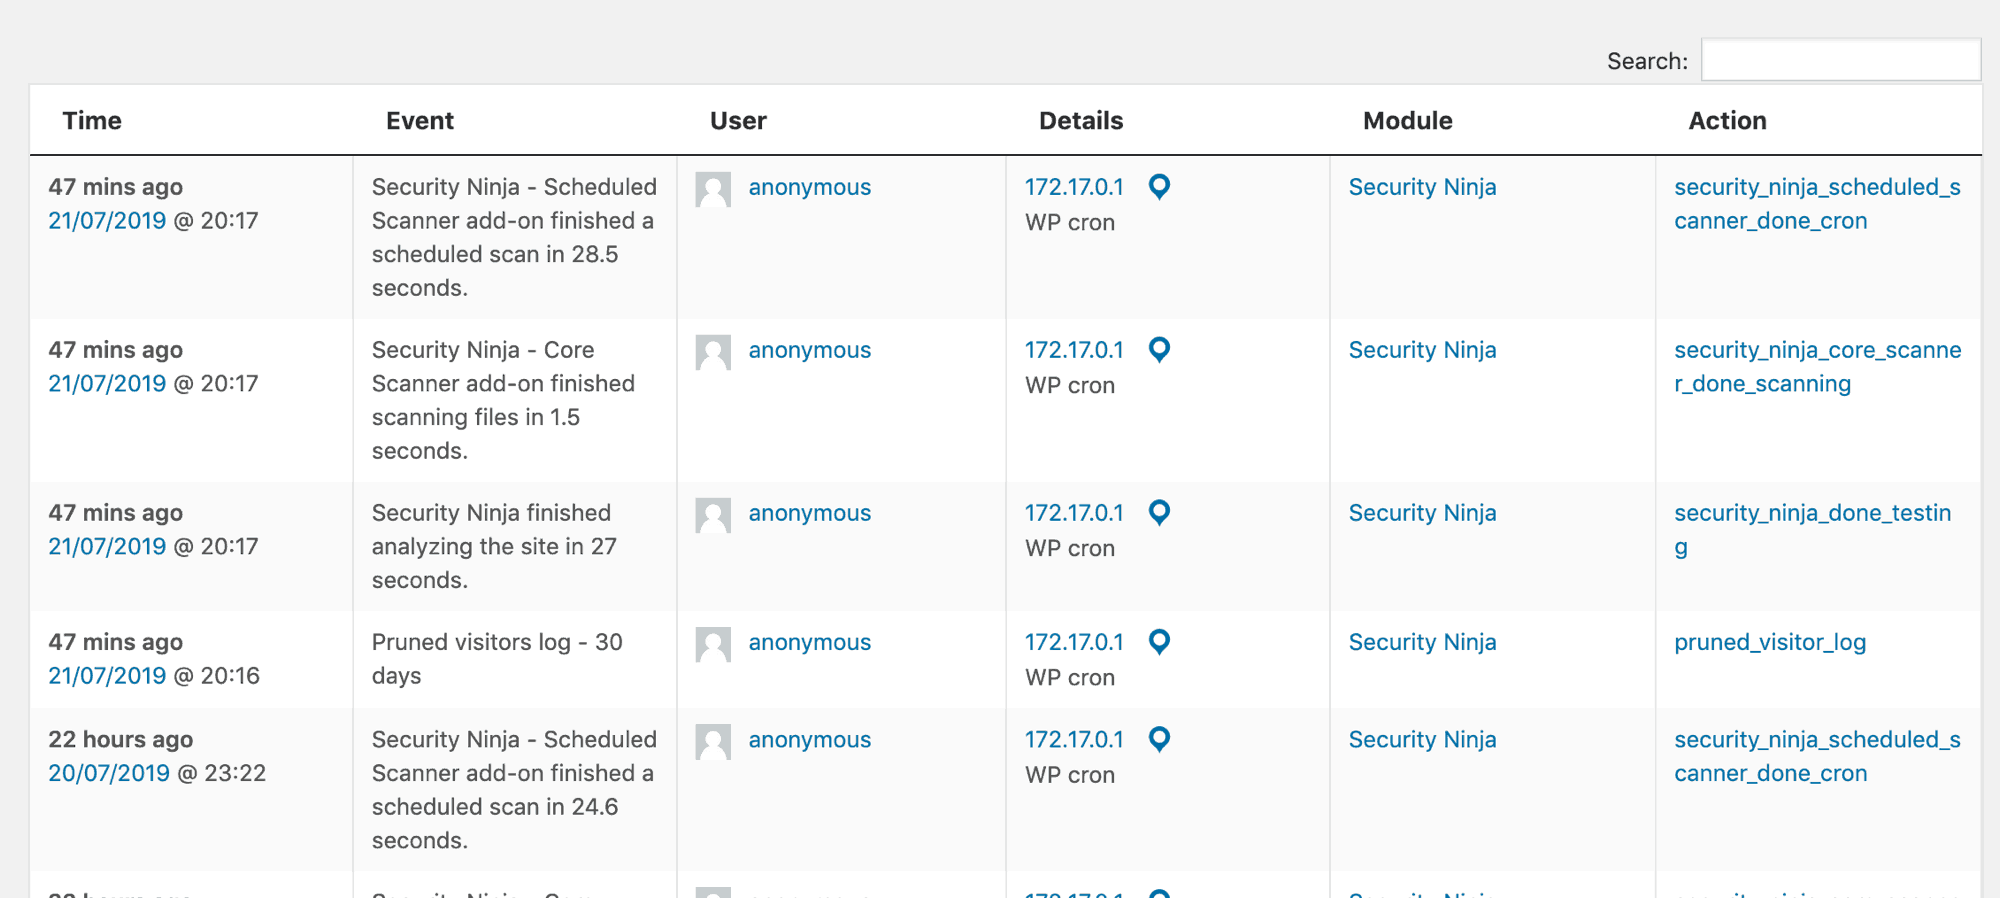 Picture of example events log from Security Ninja